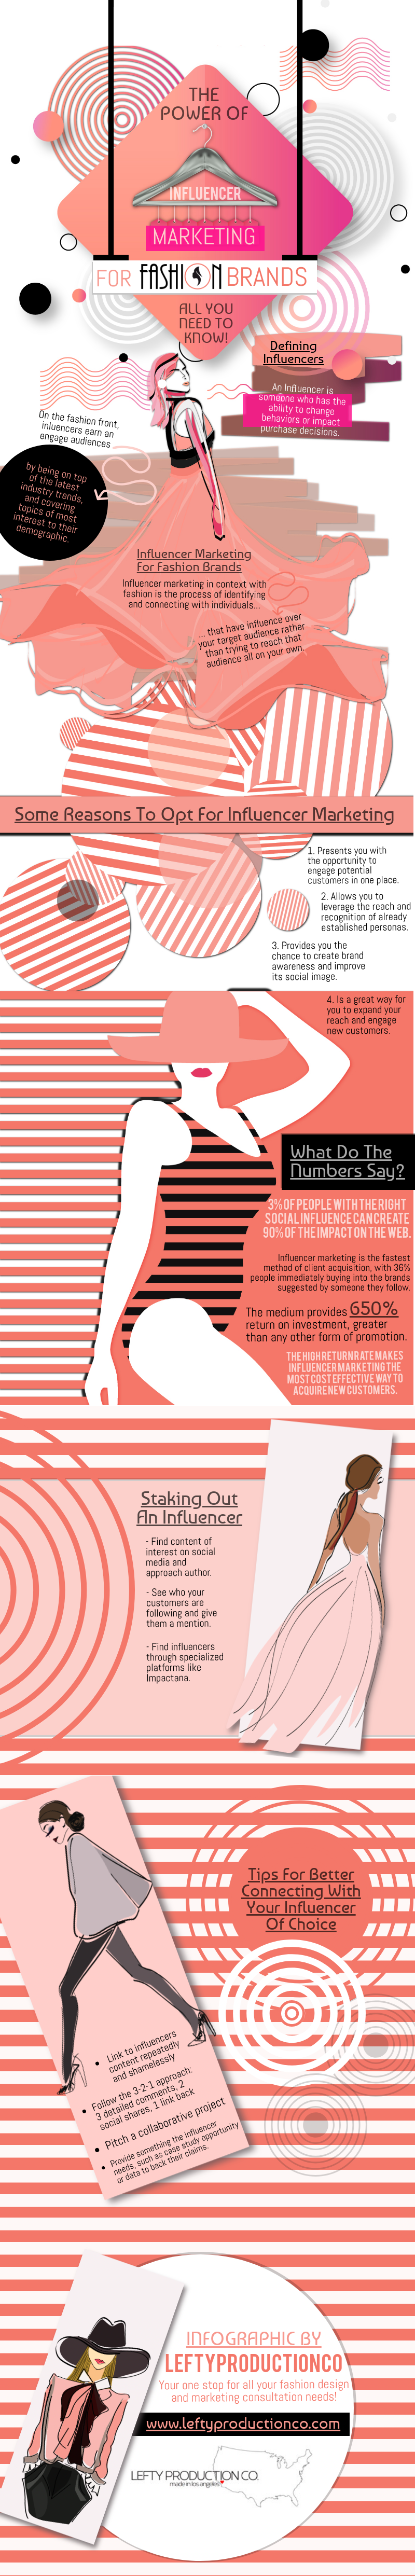 POWER OF INFLENCER MARKETING FOR FASHION BRANDS